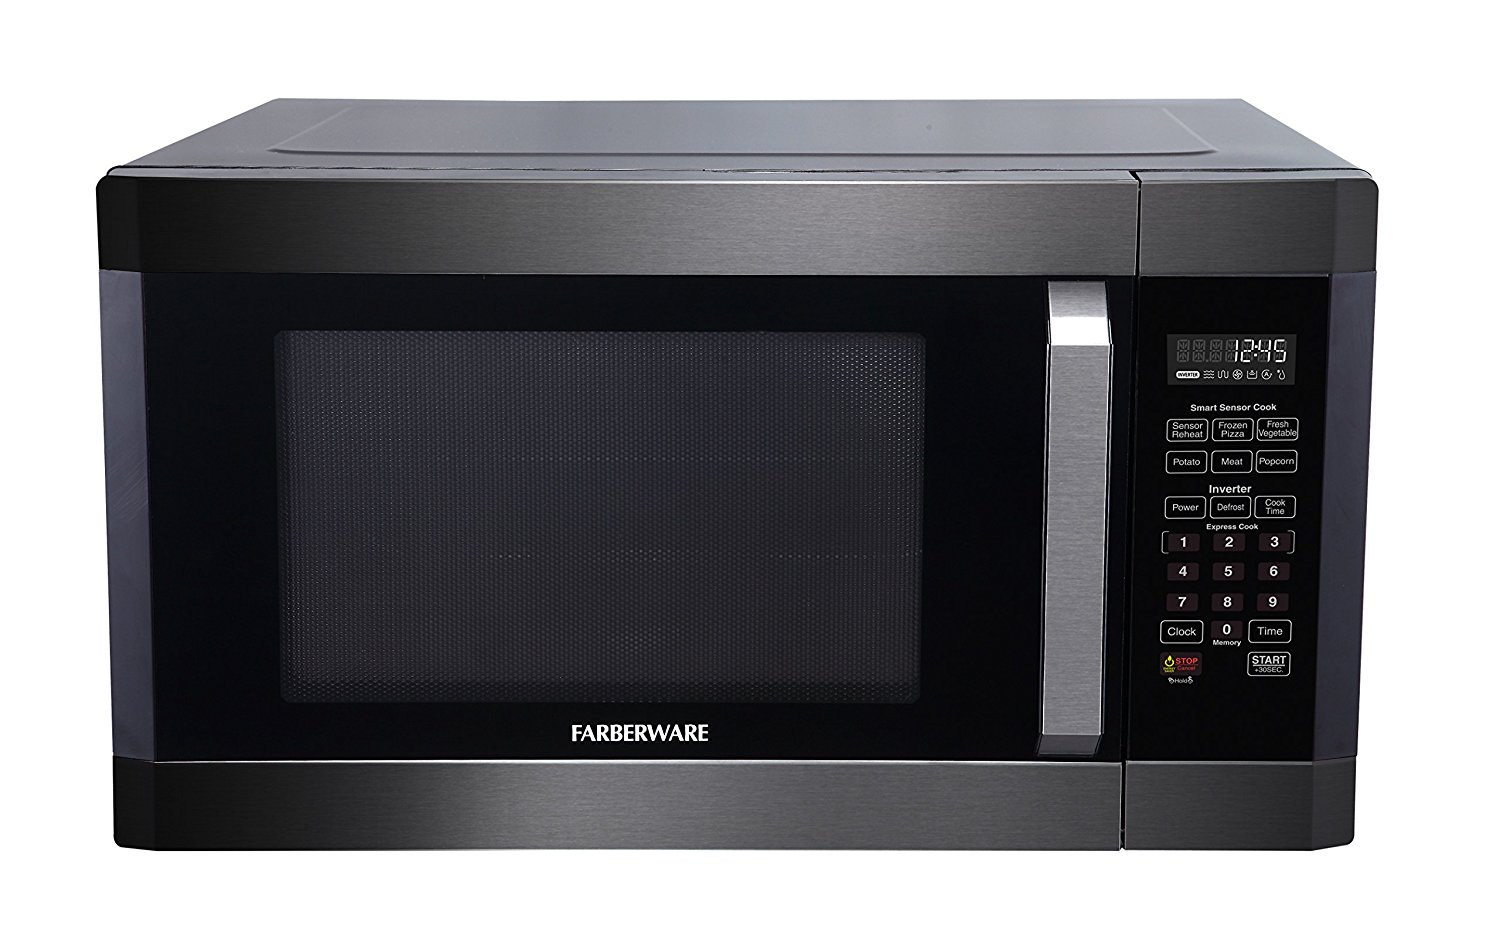 1.6 cubic feet microwave oven 1300 watts